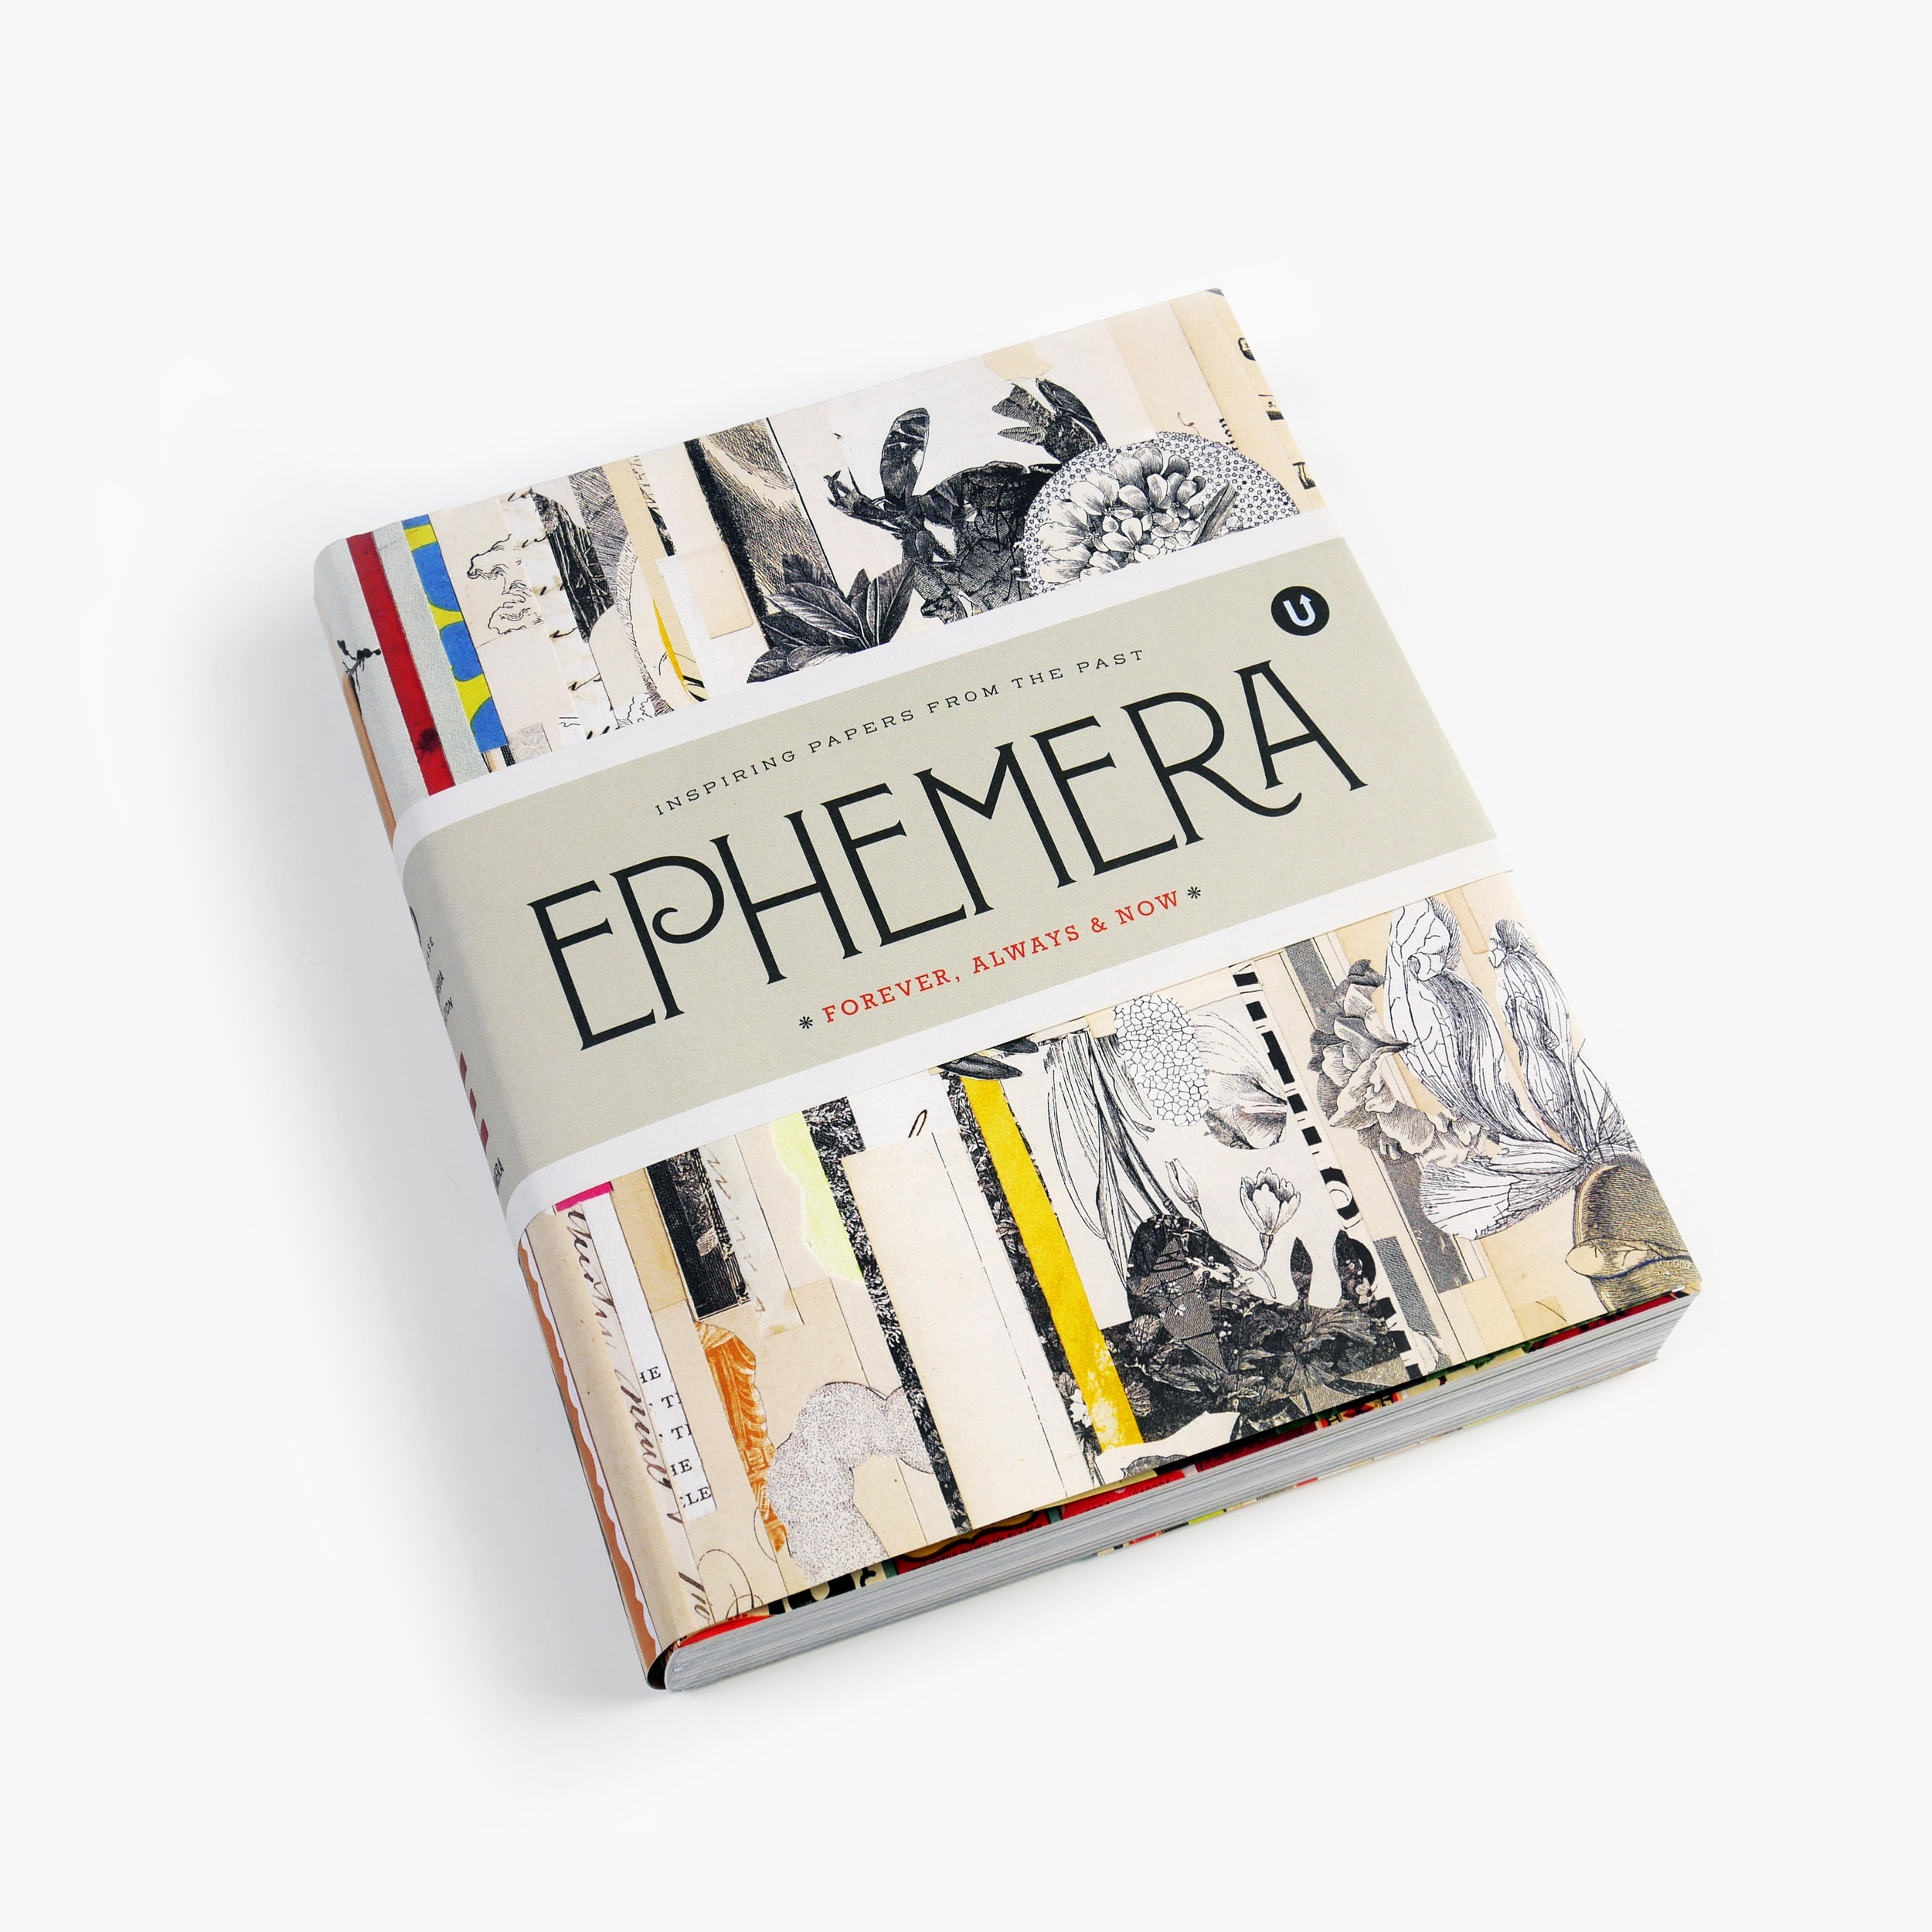 Ephemera-cover-05.JPG